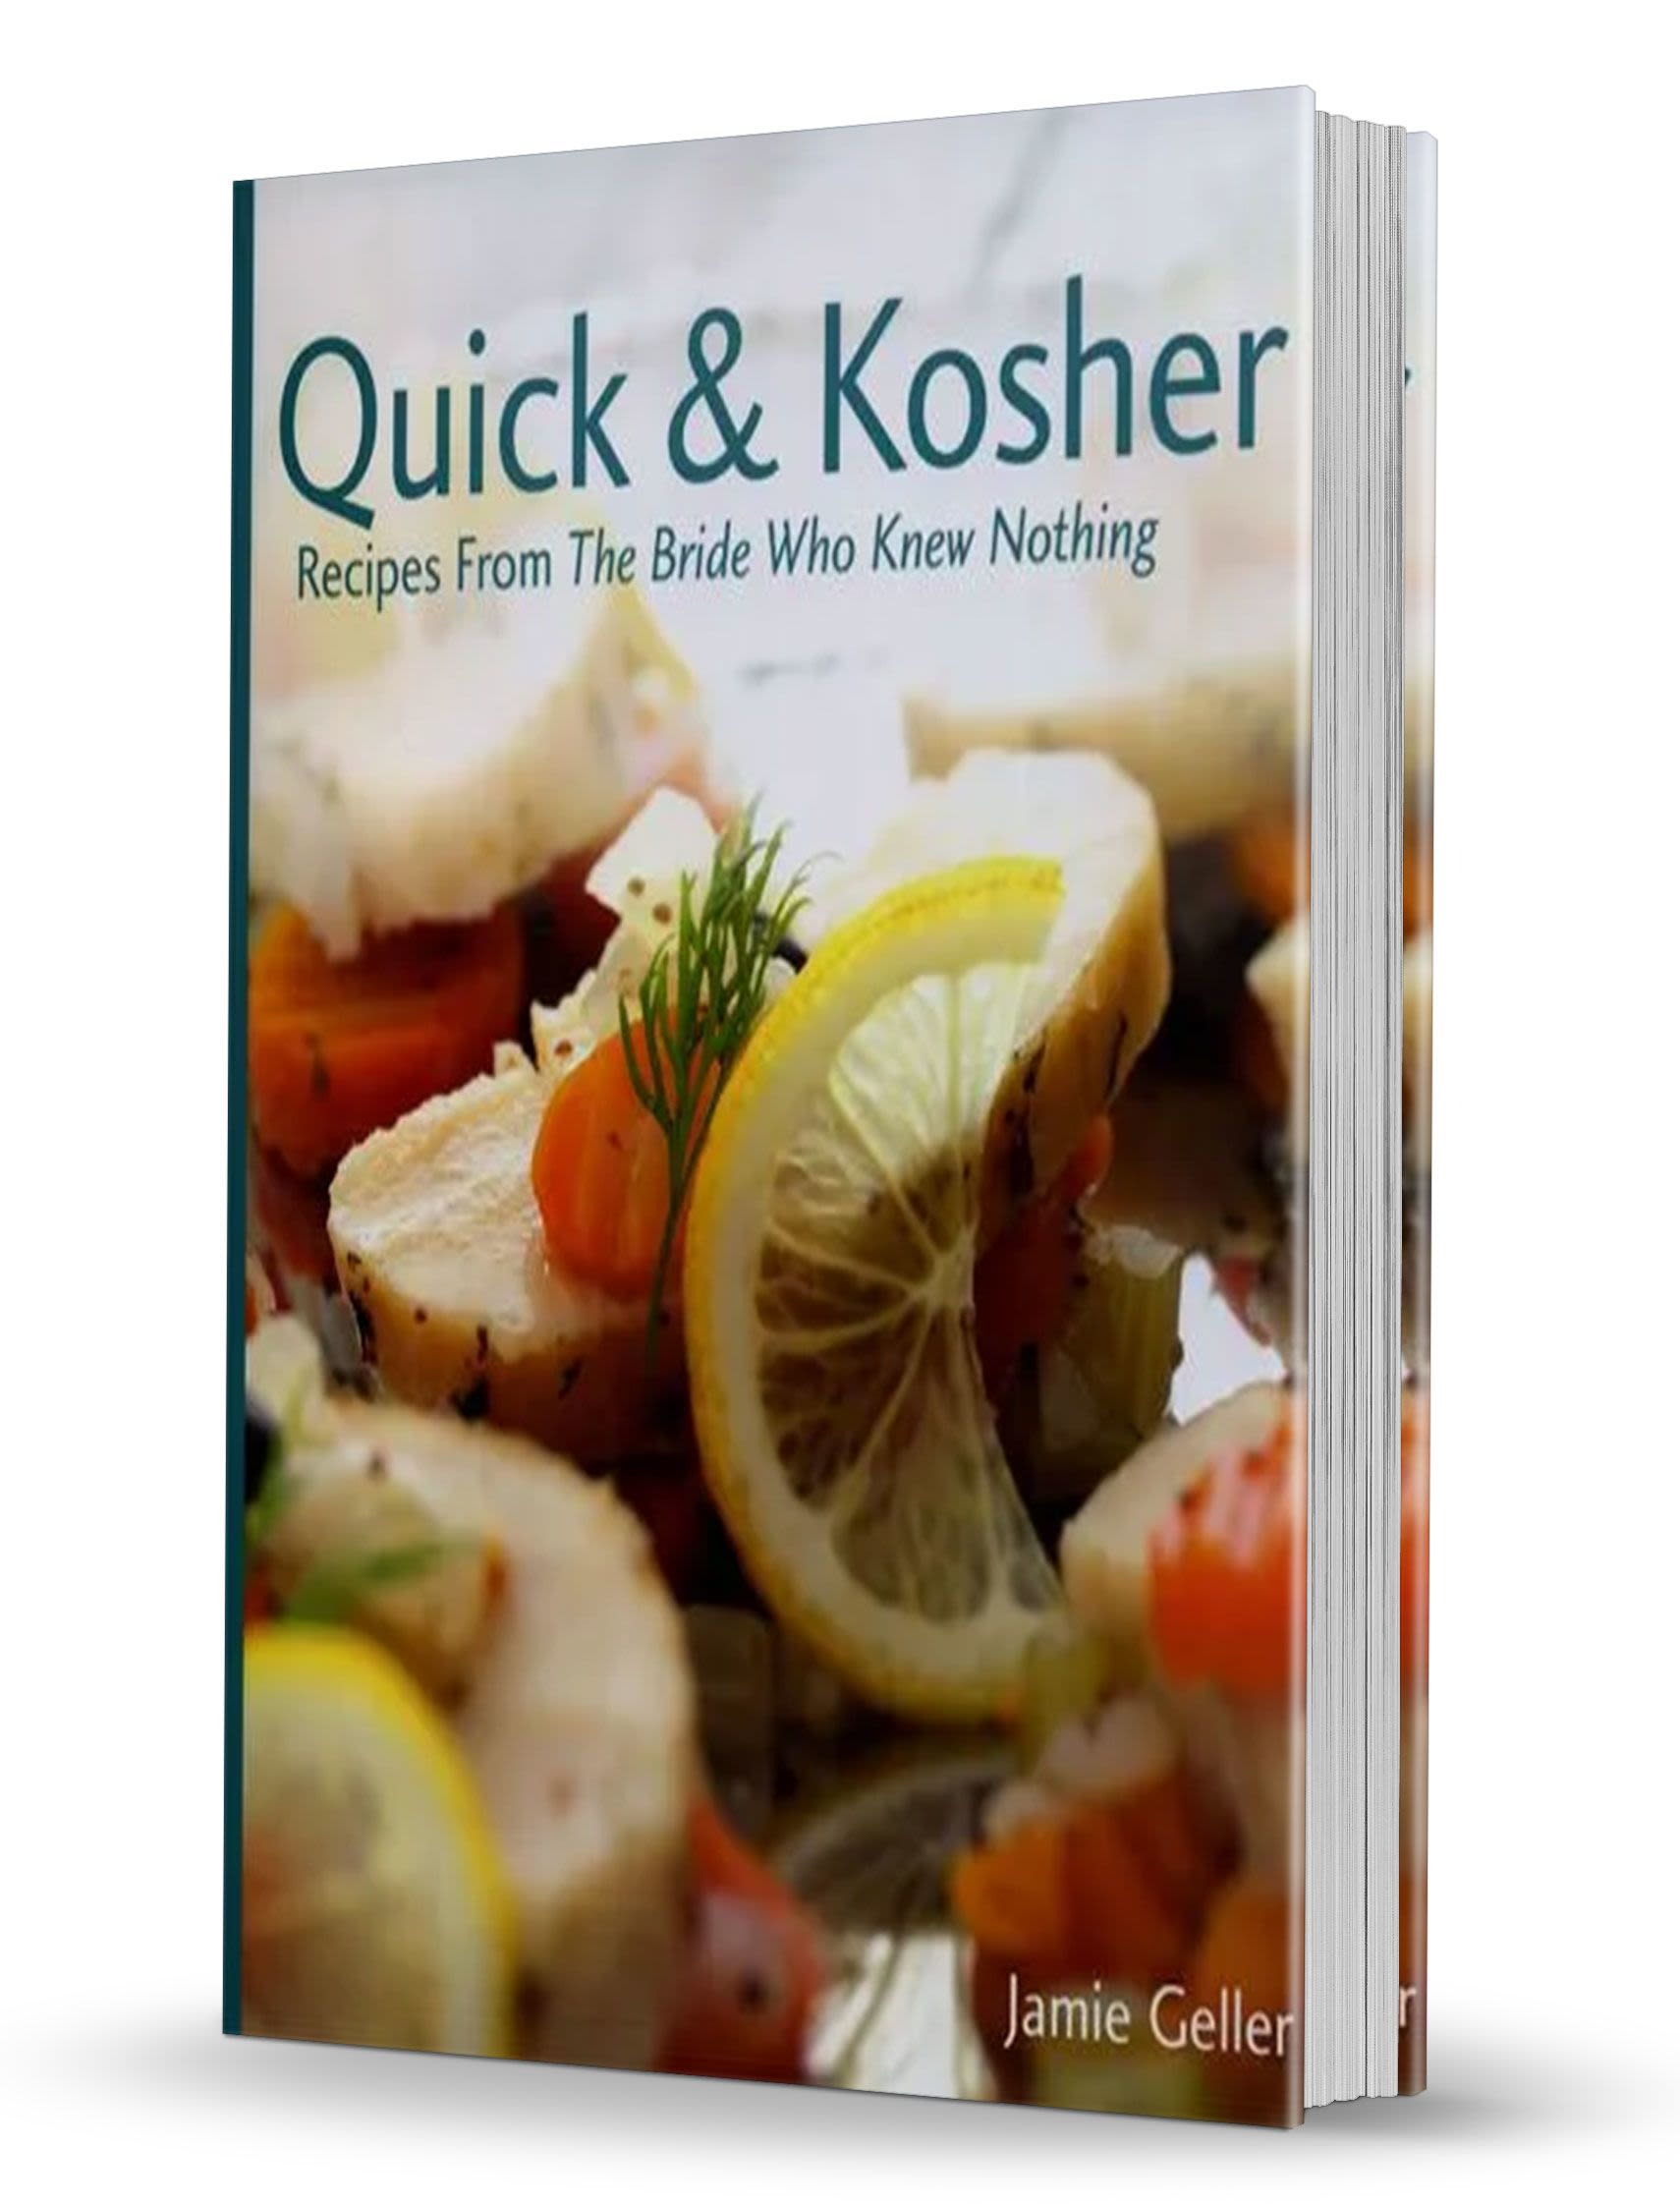 Quick and Kosher